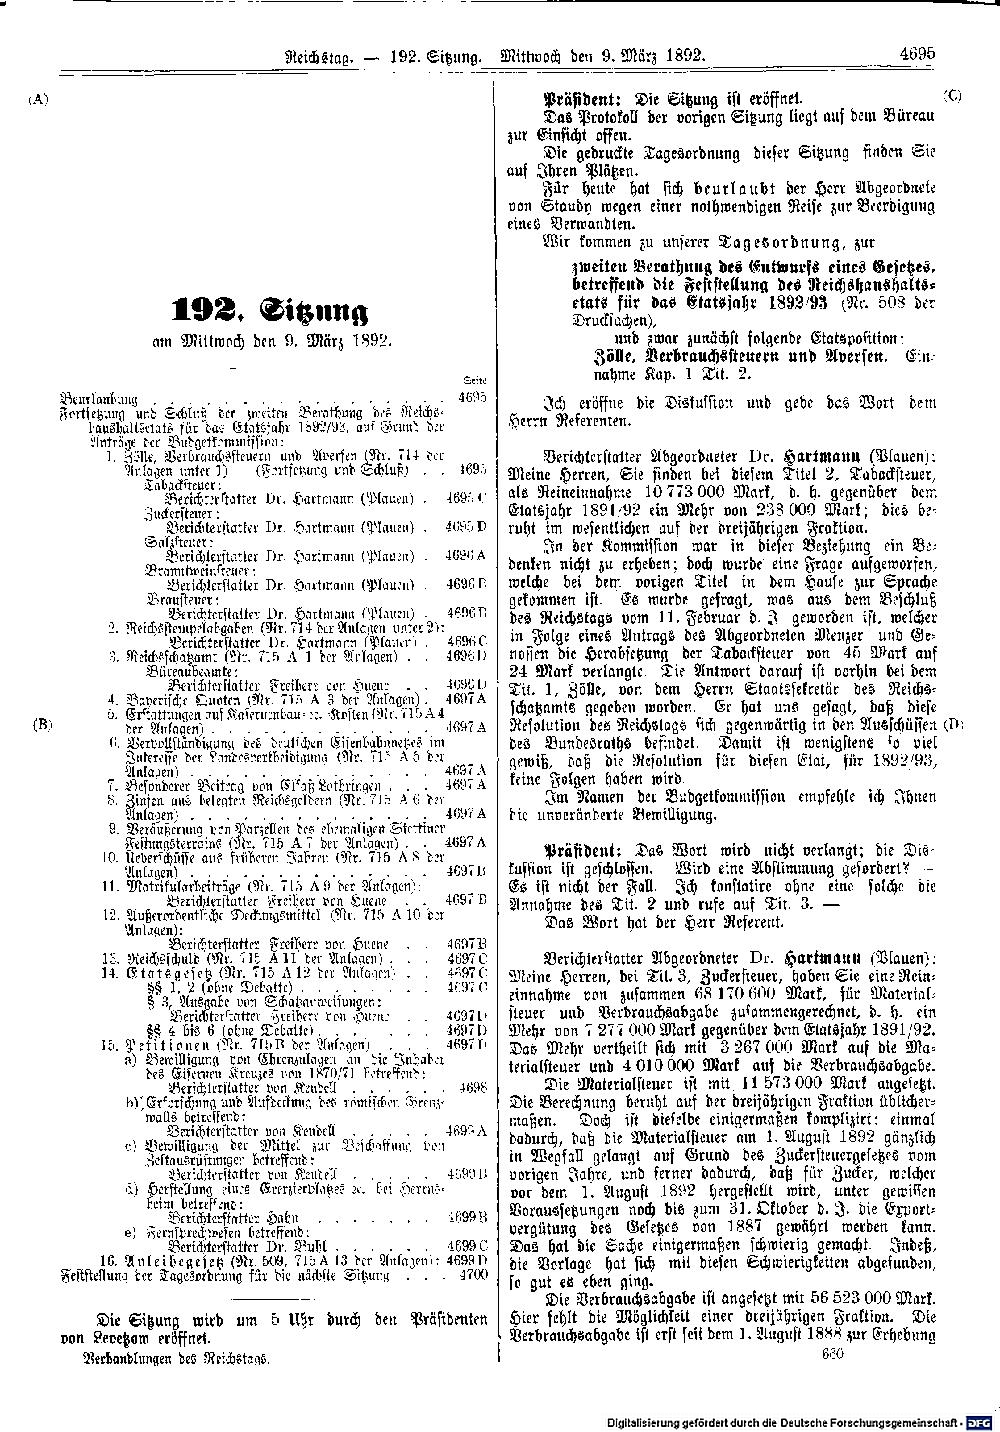 Scan of page 4695